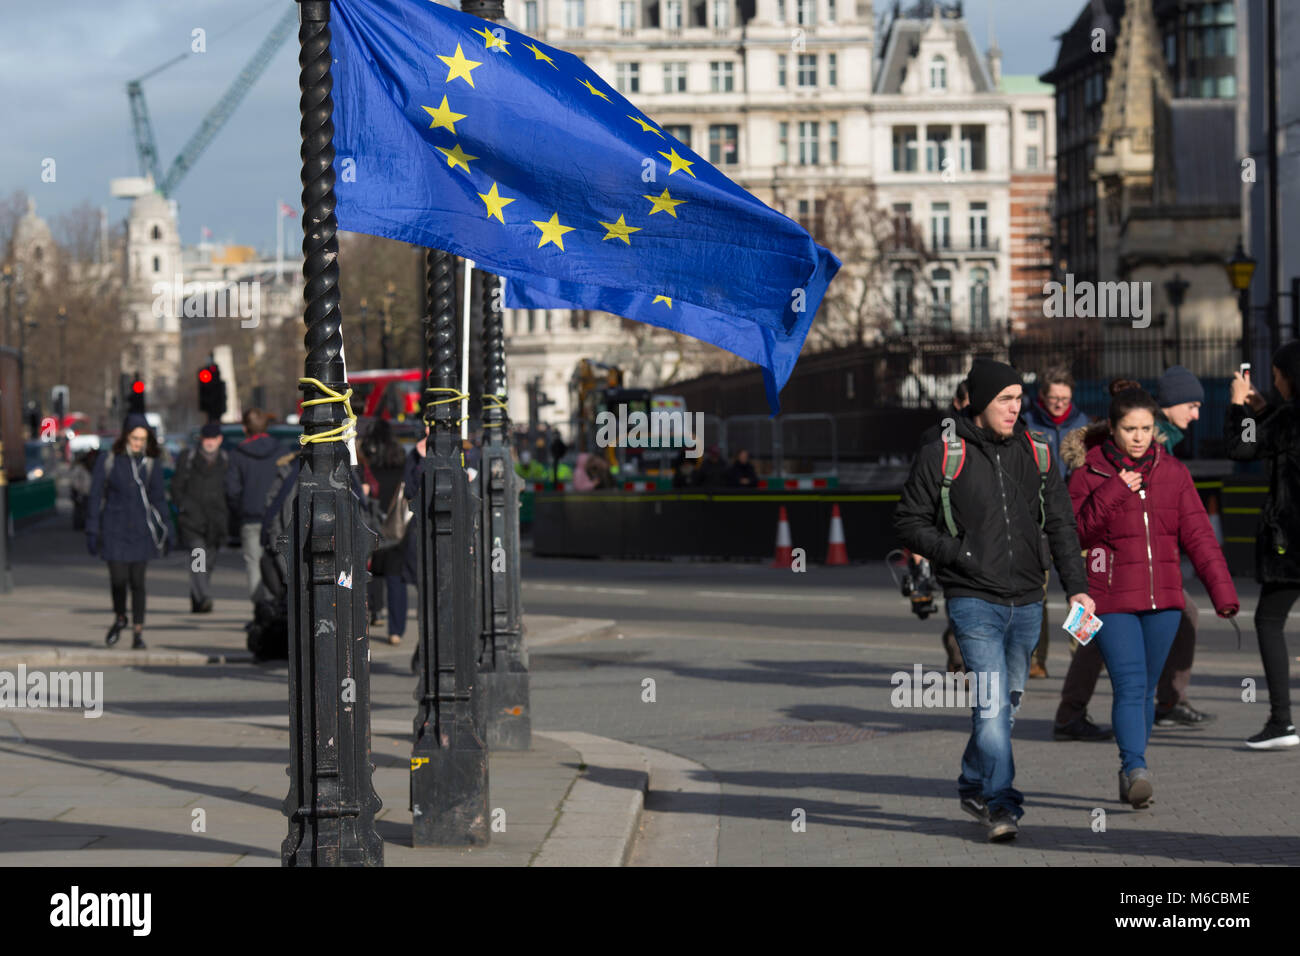 European Union flag attached to a lamp post outside Palace of Westminster by Pro European Union protesters against - Stock Image